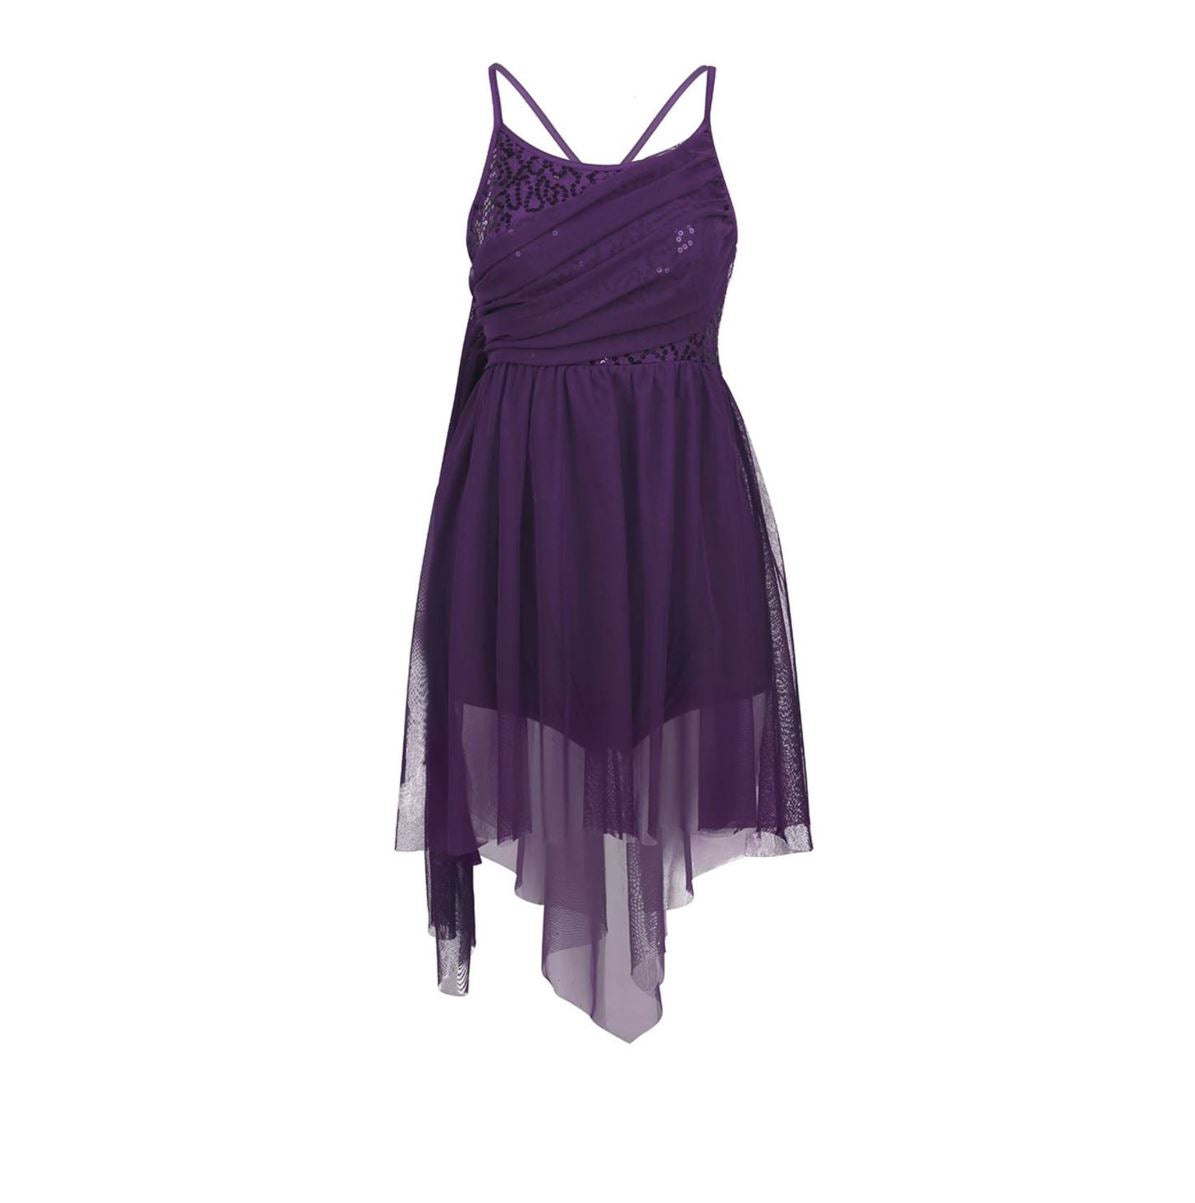 Purple in colour, leotard dress, sequins top bodice, mesh skirt attached. Pas de bourree dancewear. Pasdebourreedancewear.